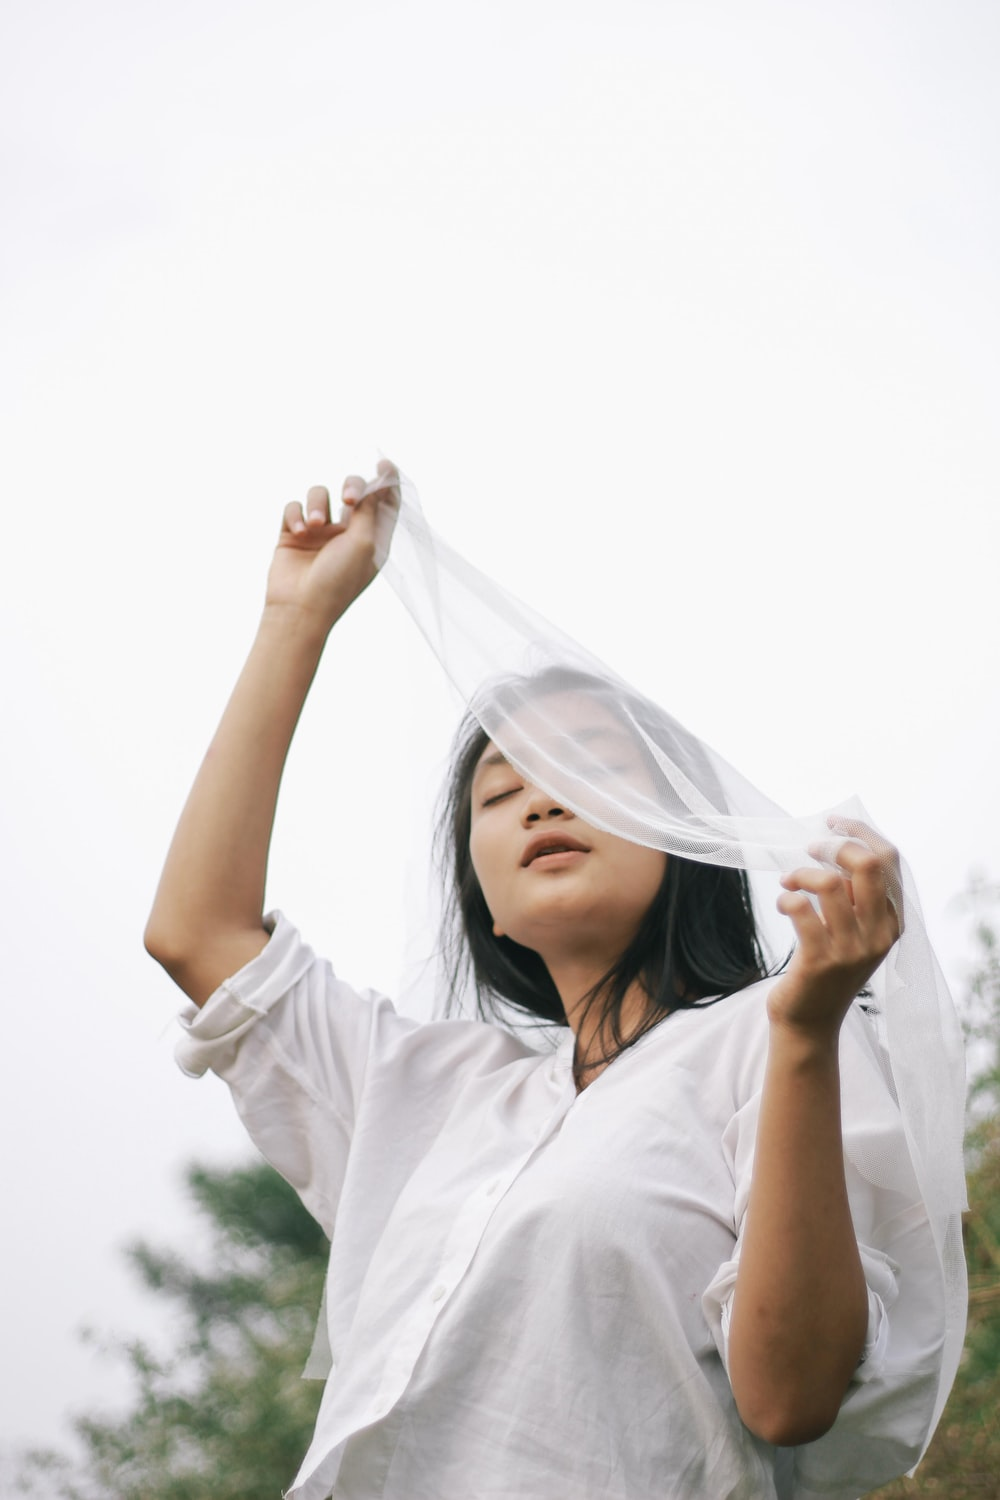 woman in white hijab covering her face with white sheer textile